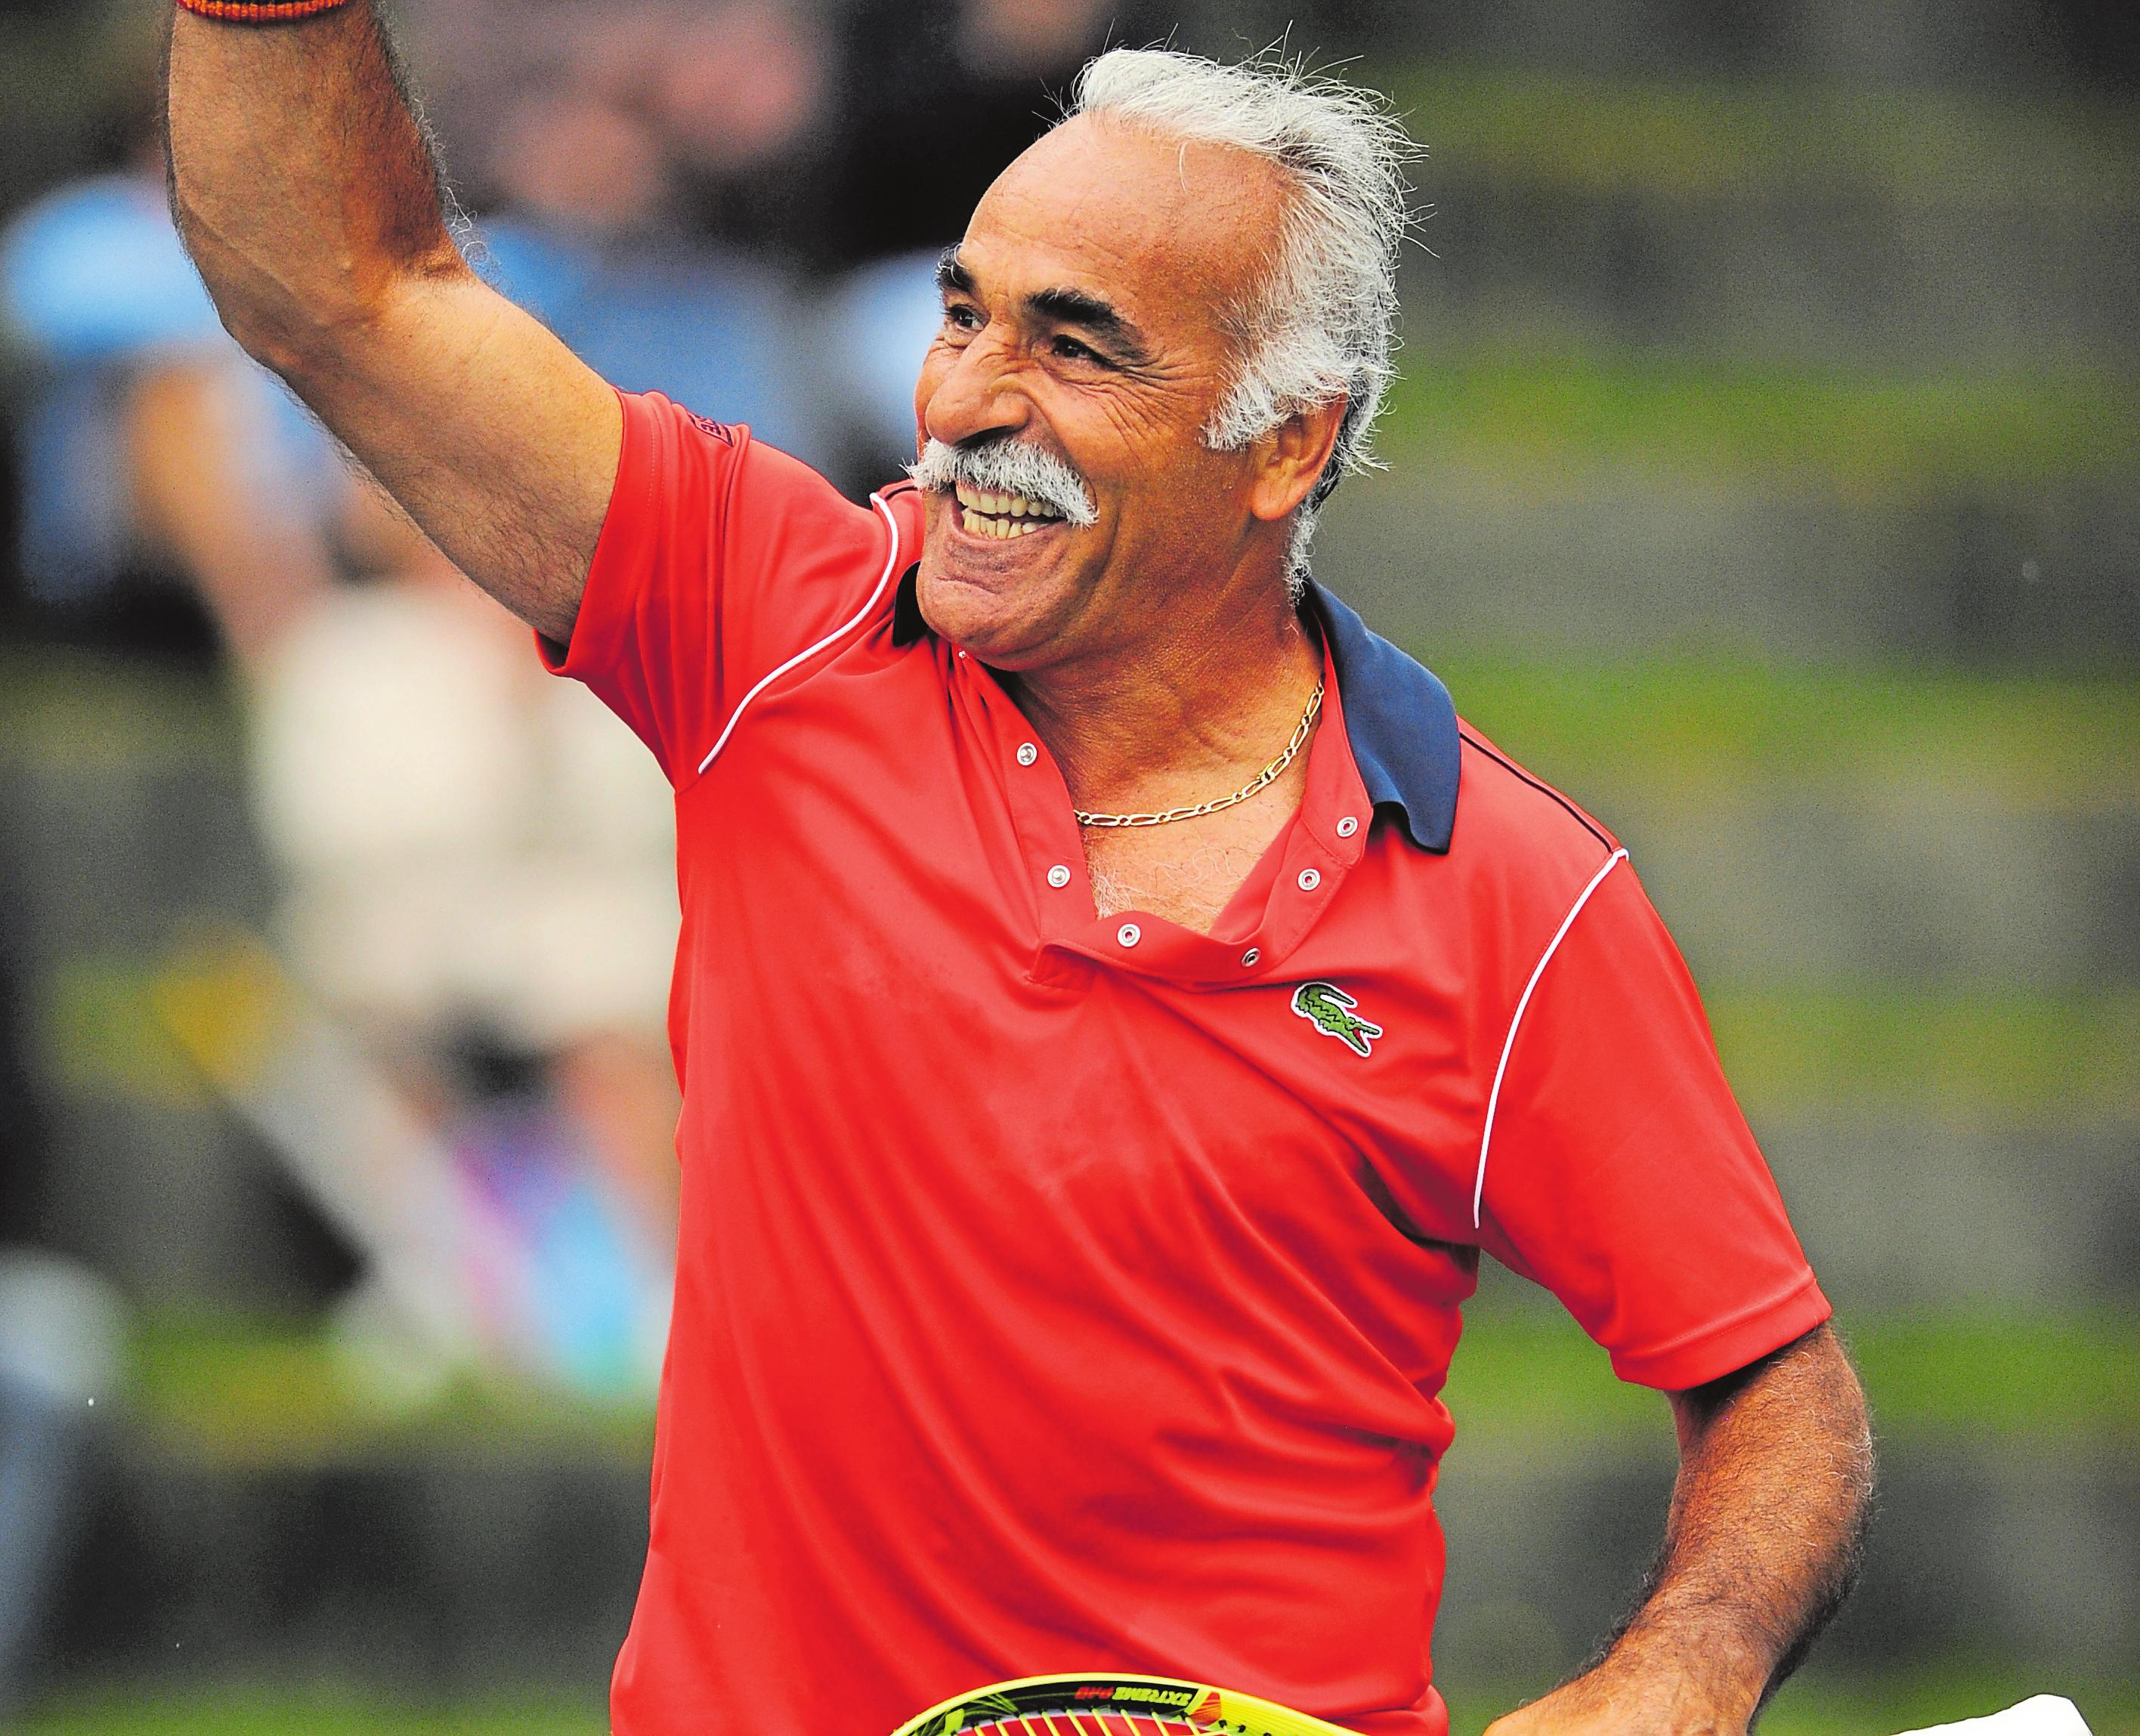 Mansour Bahrami Photo: H. Dumont